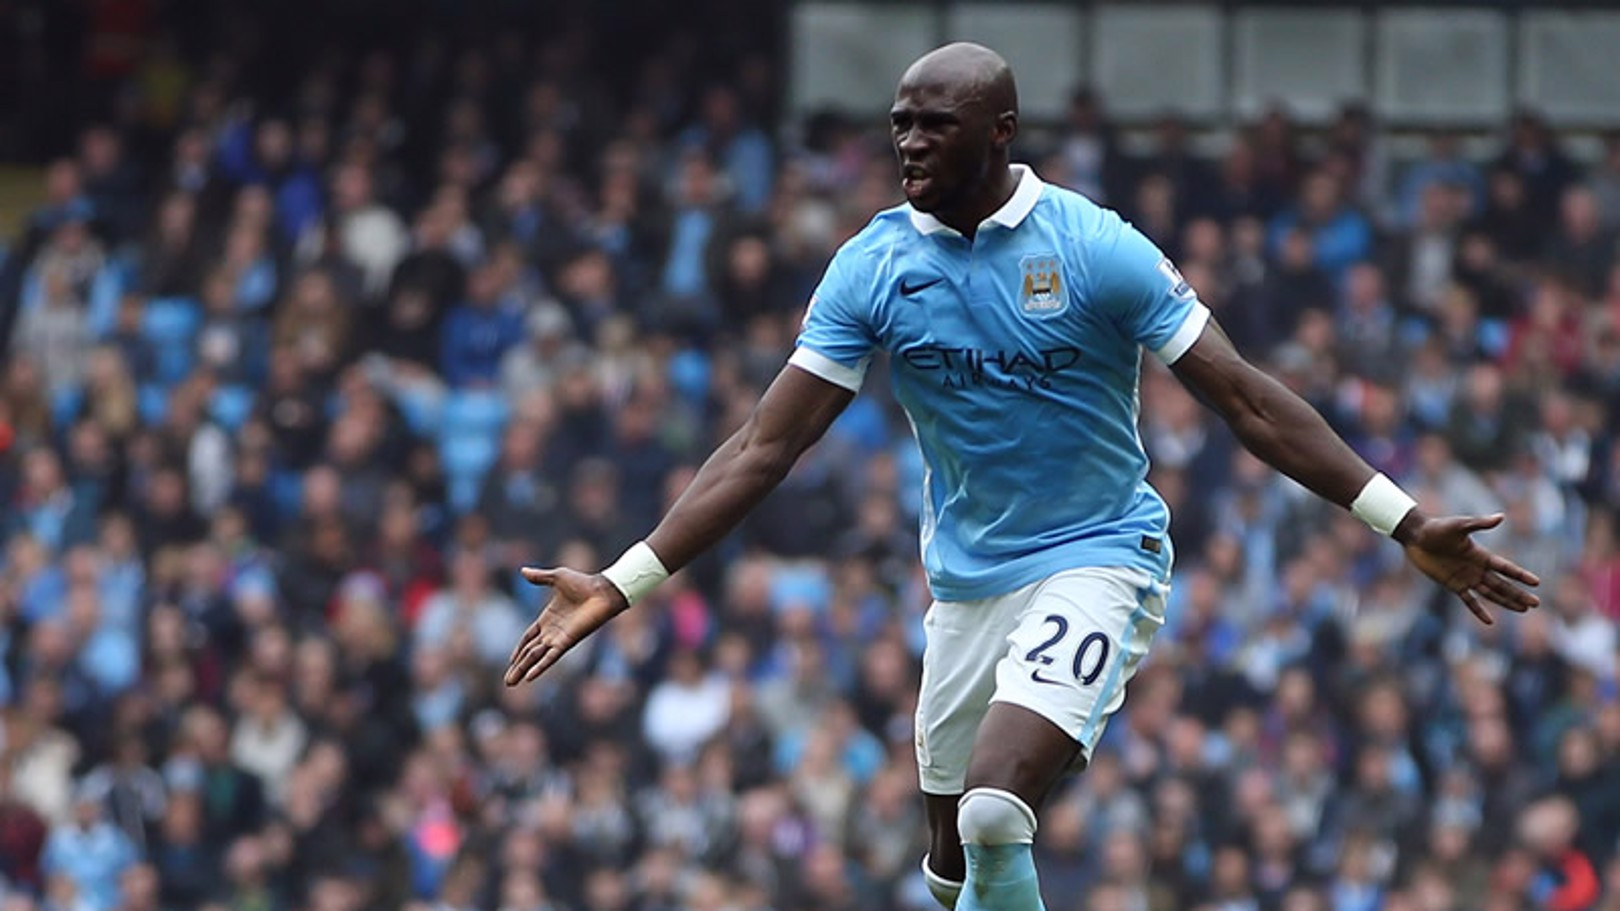 Eliaquim Mangala at 25: The day he was born...